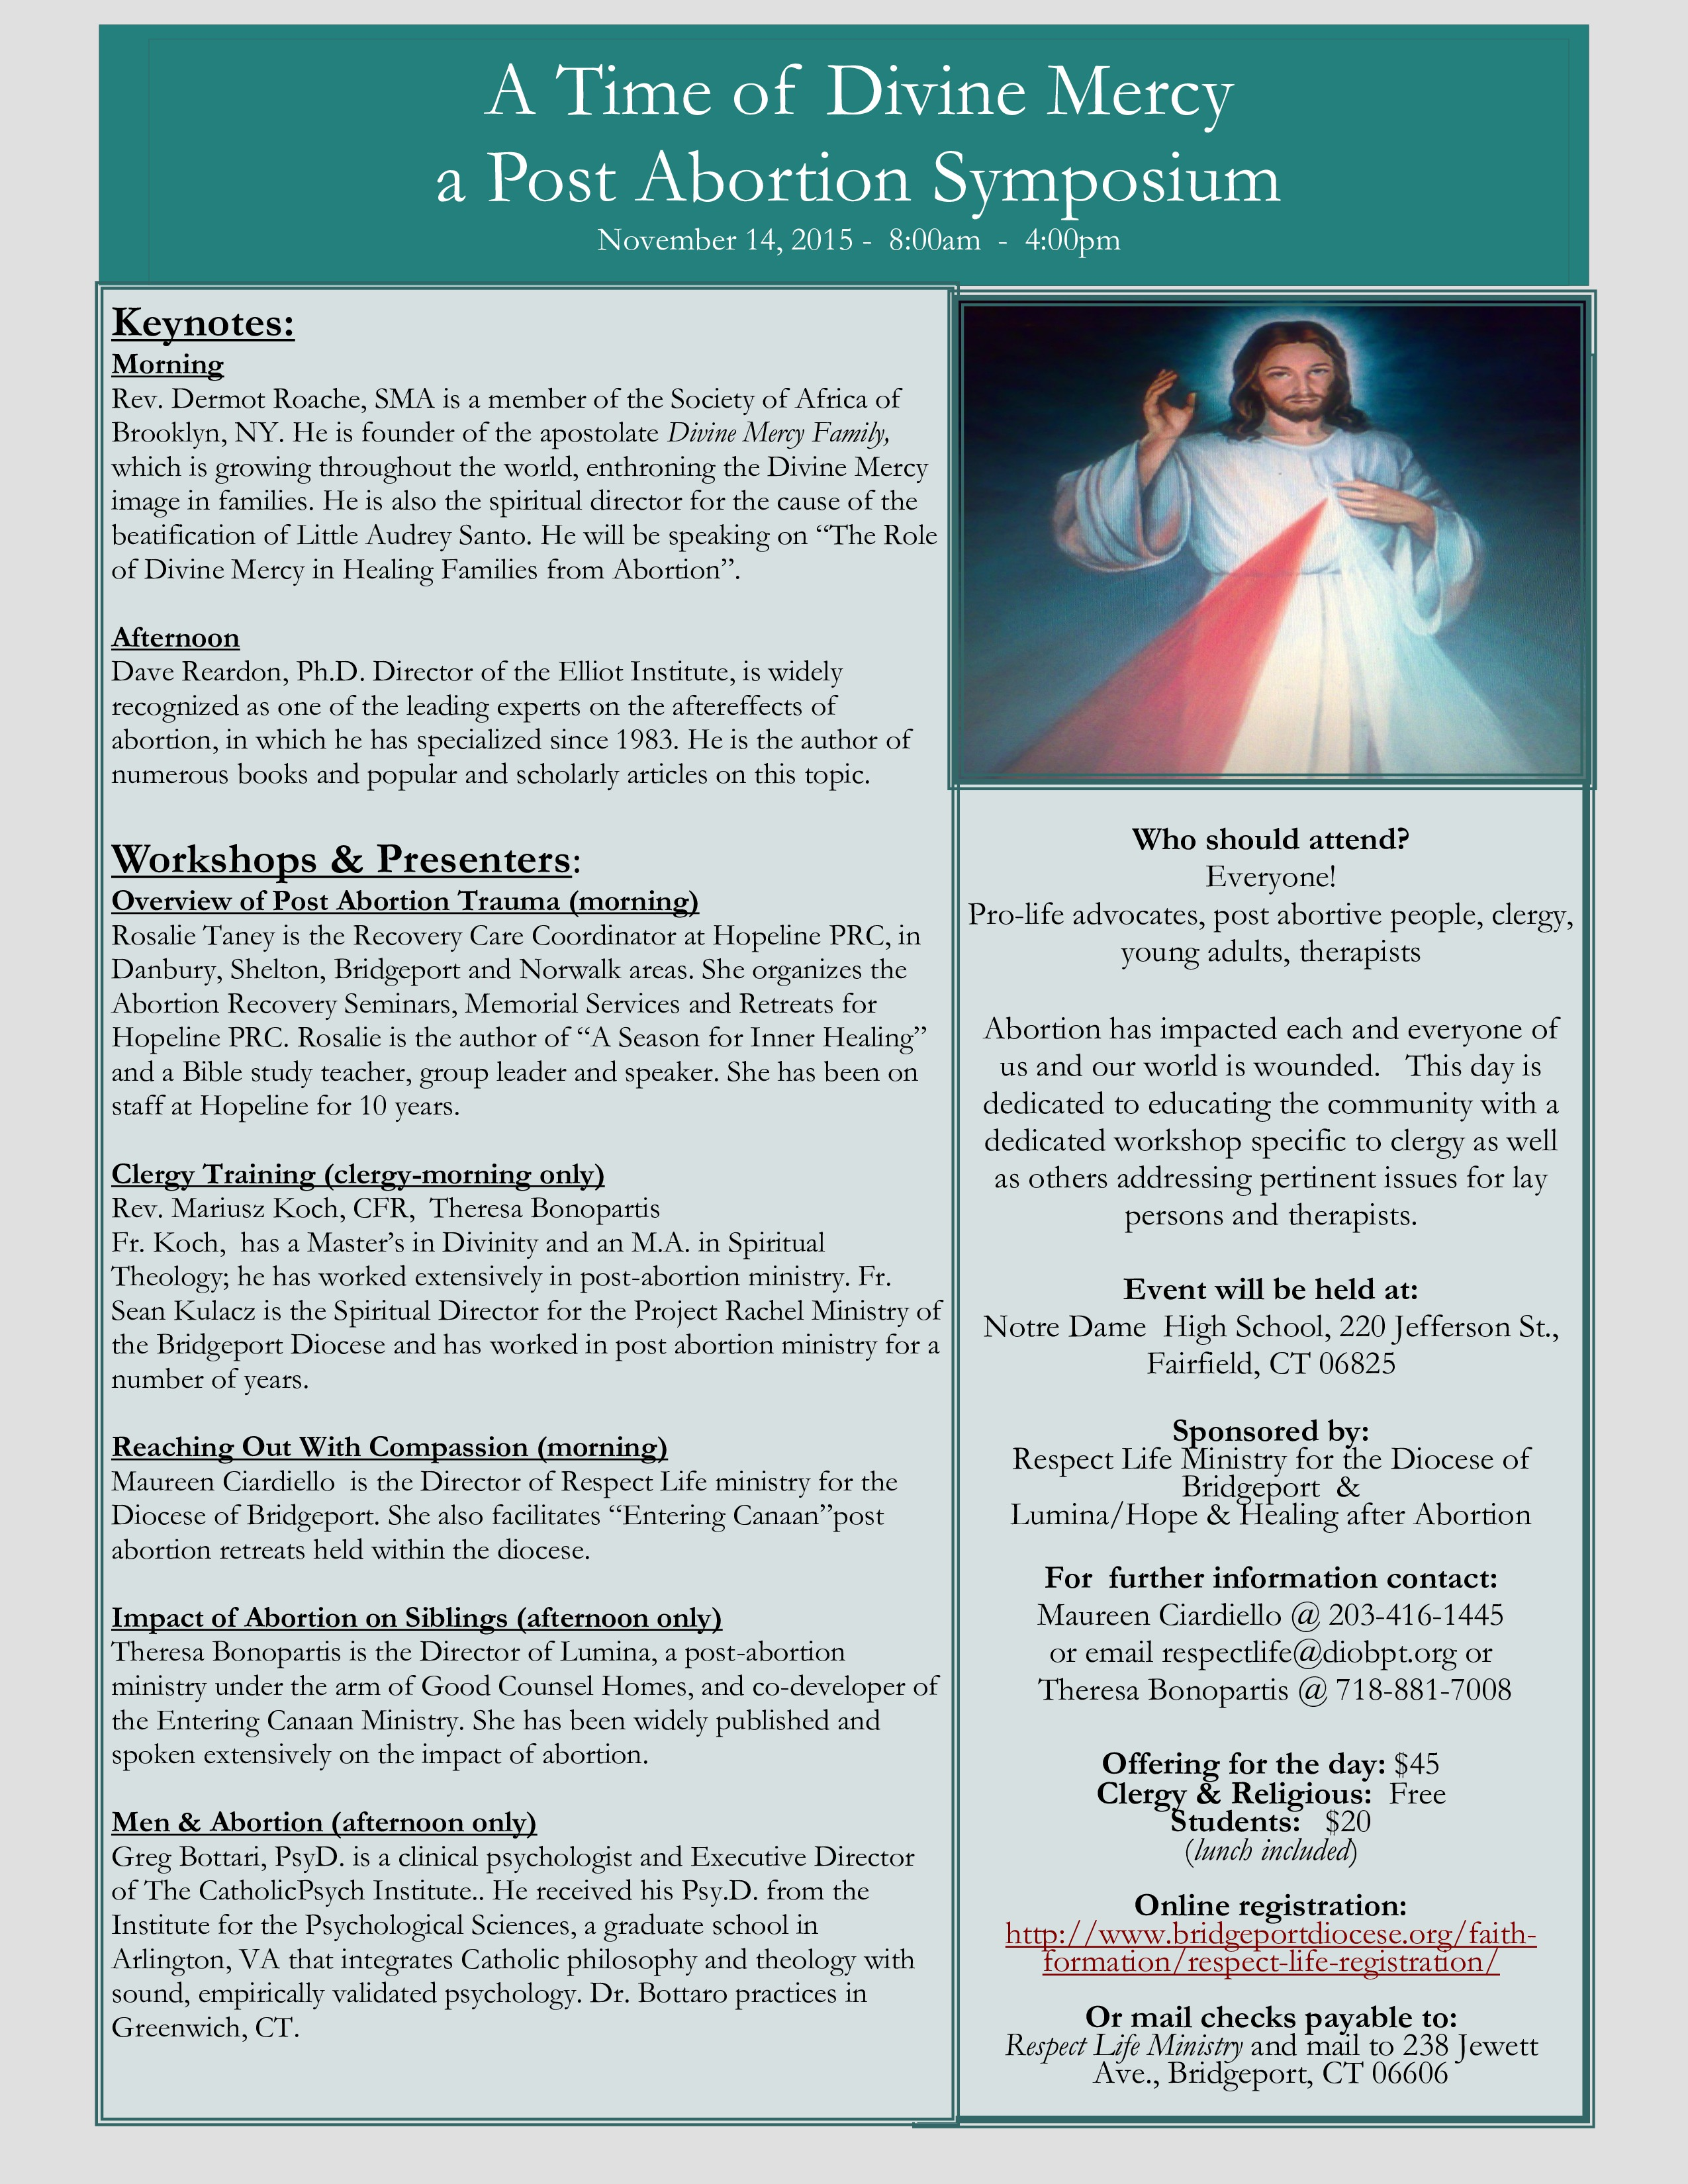 A Time for Divine Mercy - Post Abortion Symposium